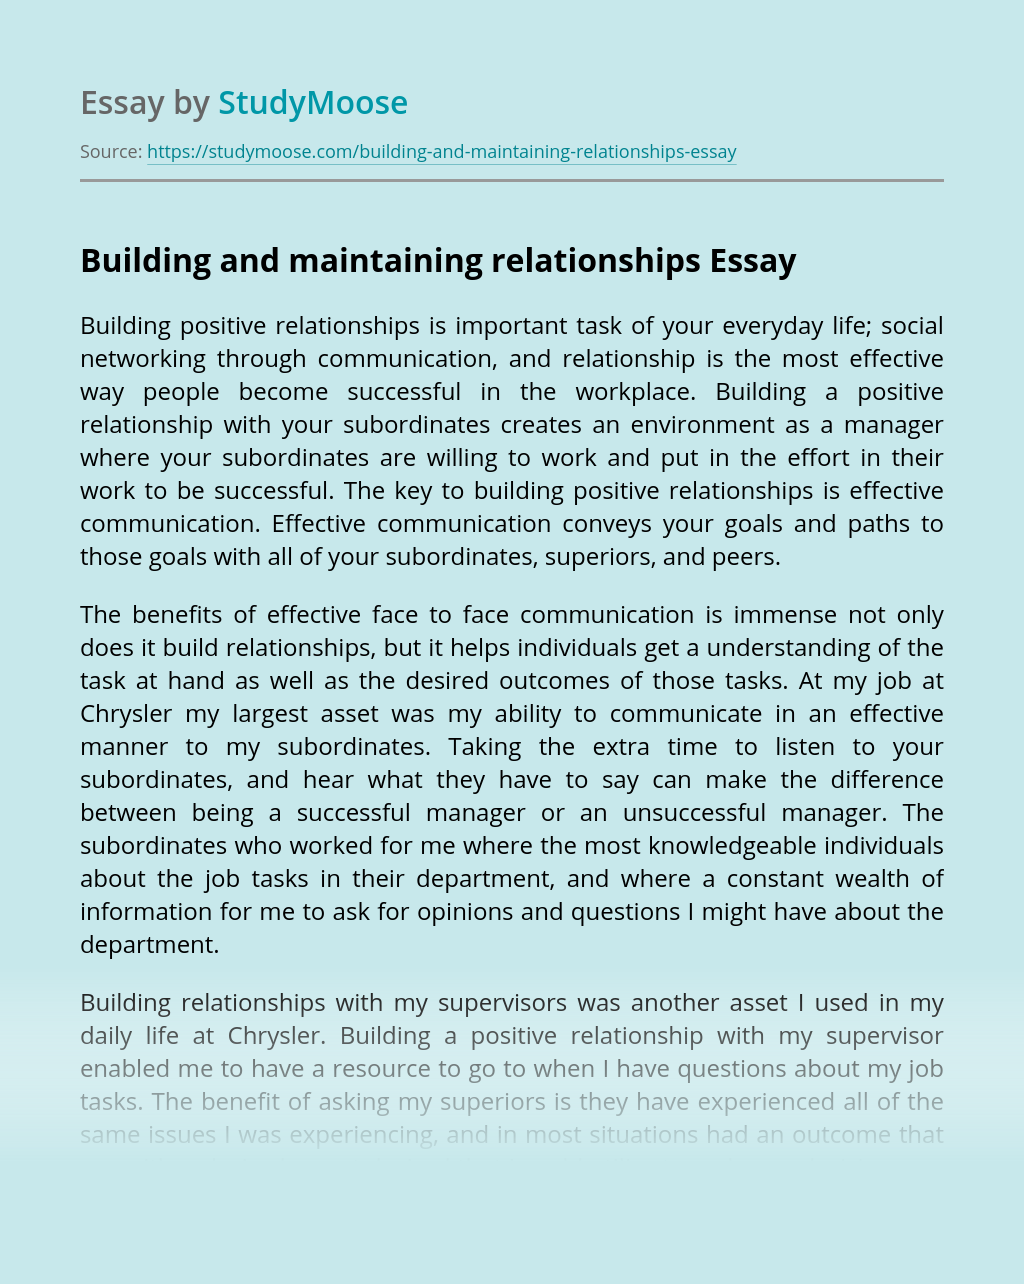 Building and maintaining relationships